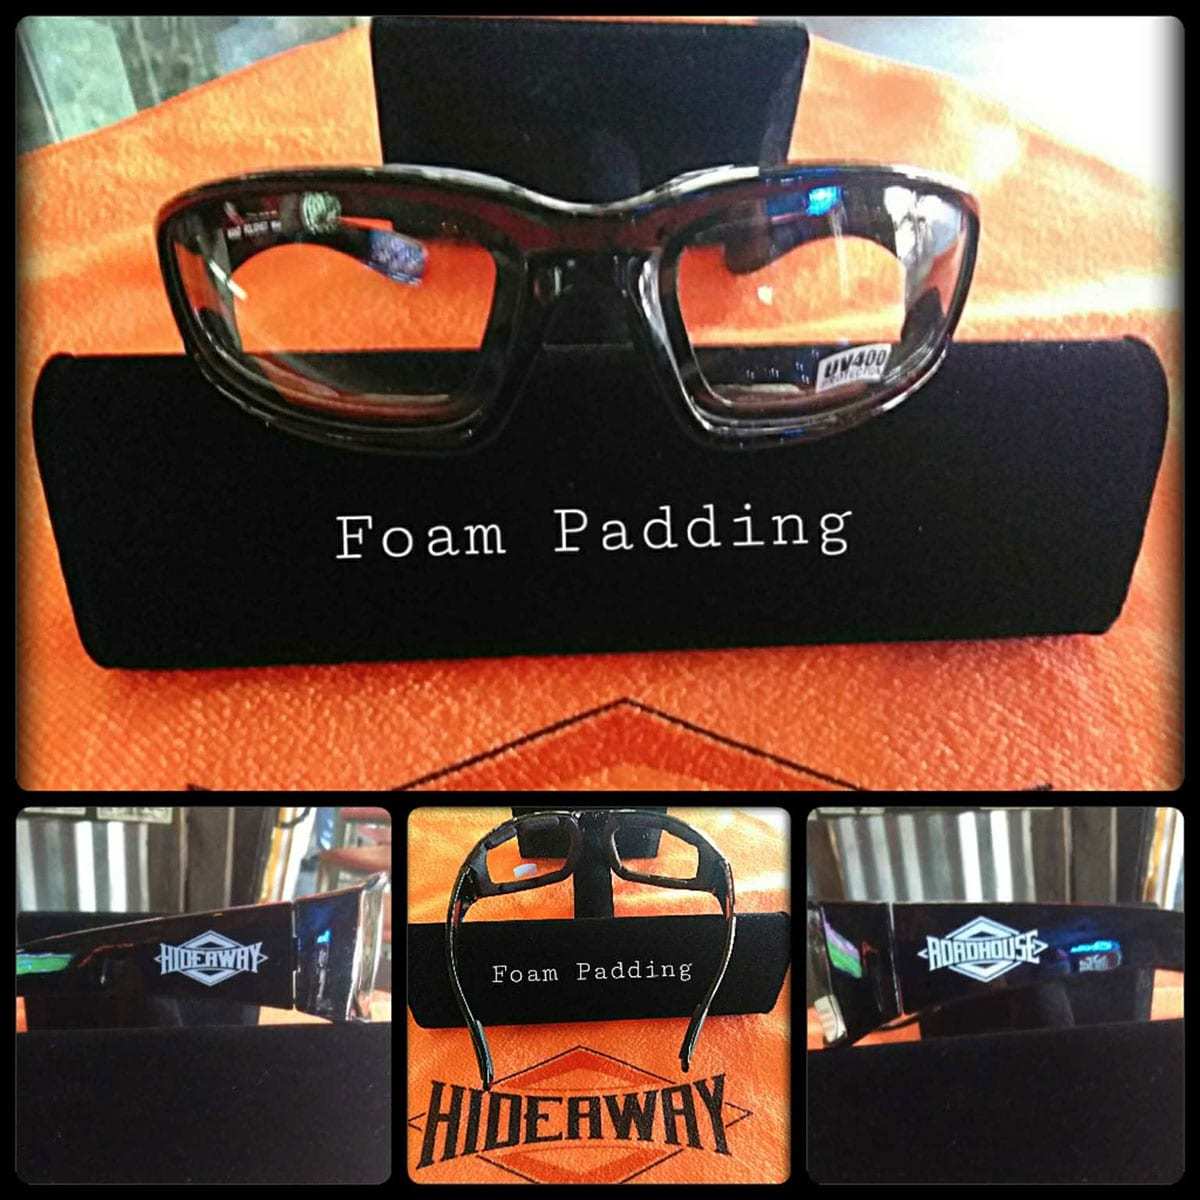 Roadhouse / Hideaway Glasses - Clear Lenses with Foam Padding Frames